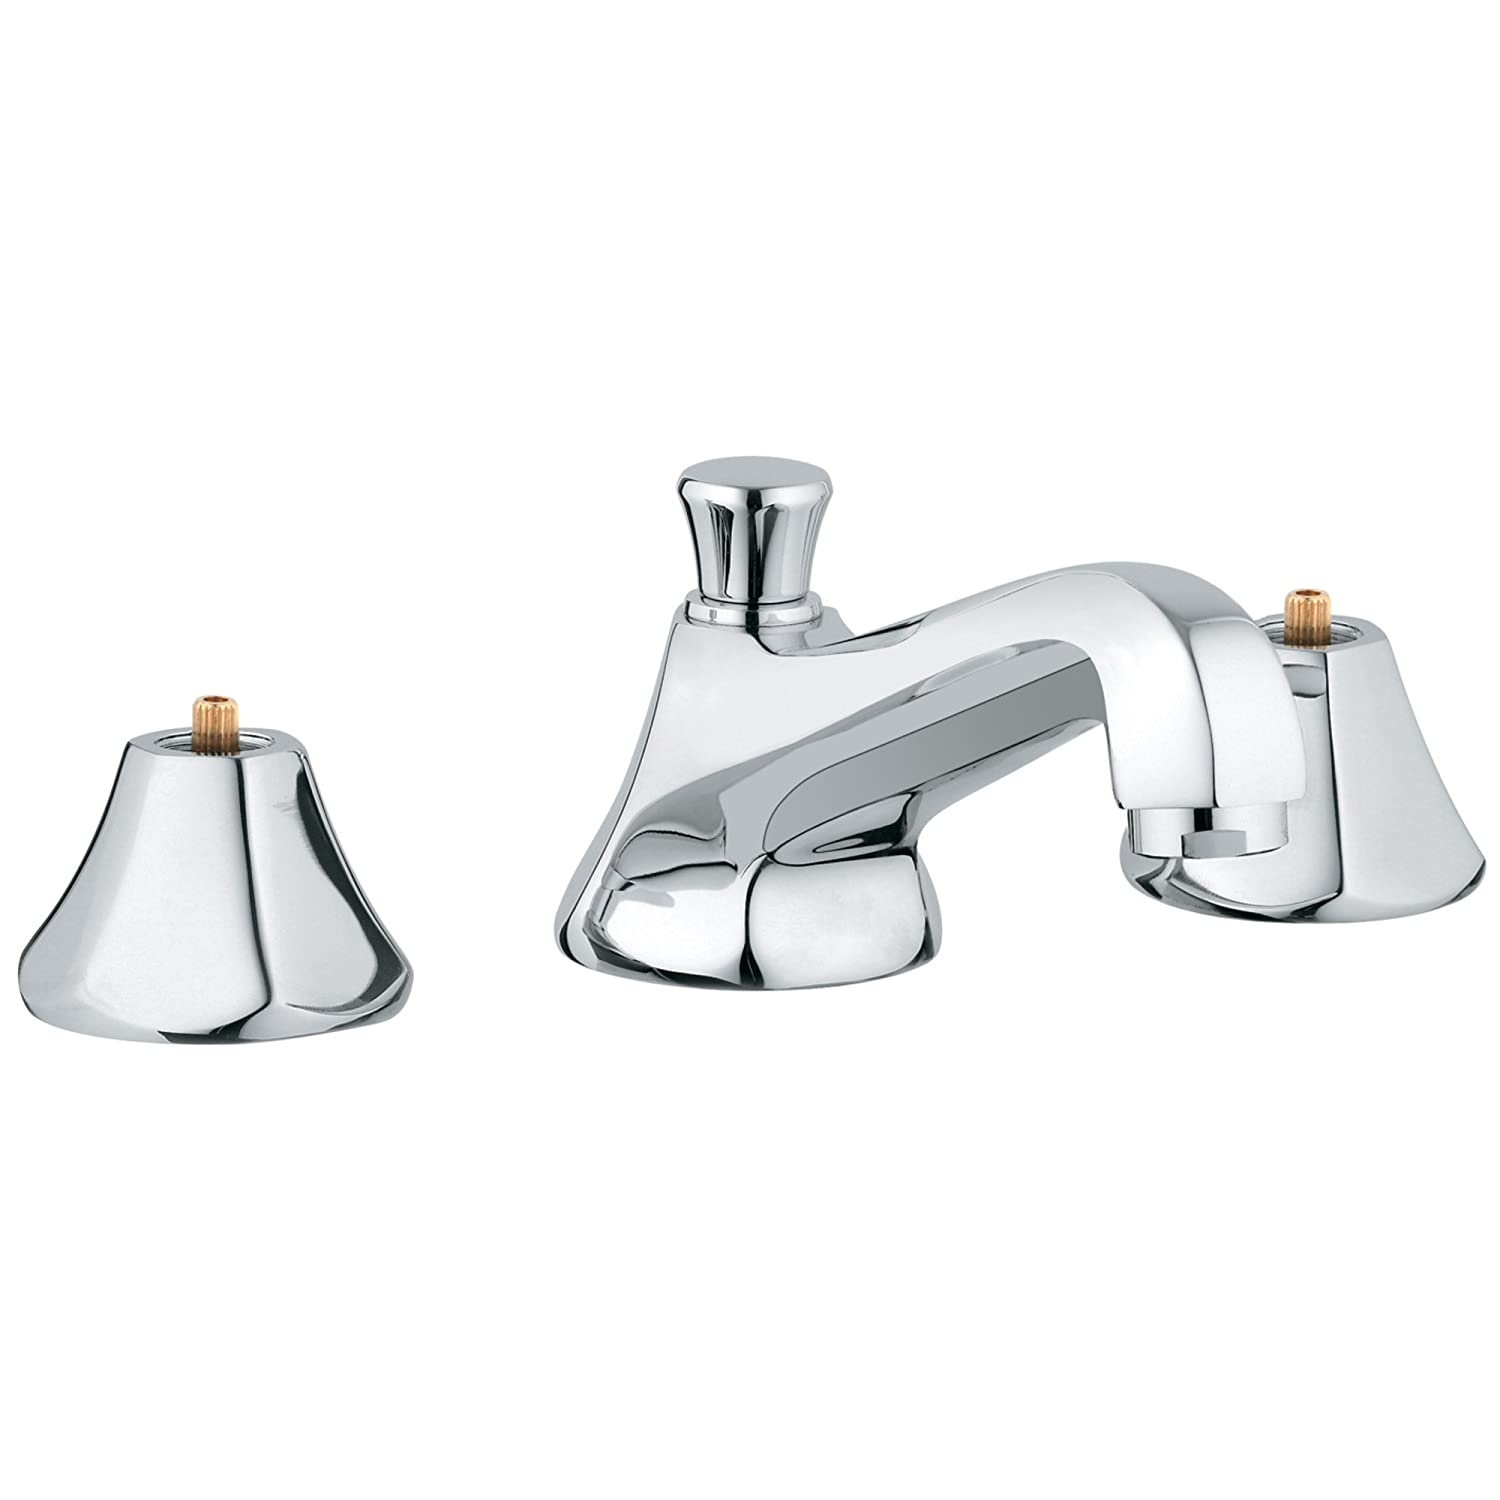 Somerset 8 in. Widespread 2-Handle Low Arc Bathroom Faucet - 1.5 GPM ...